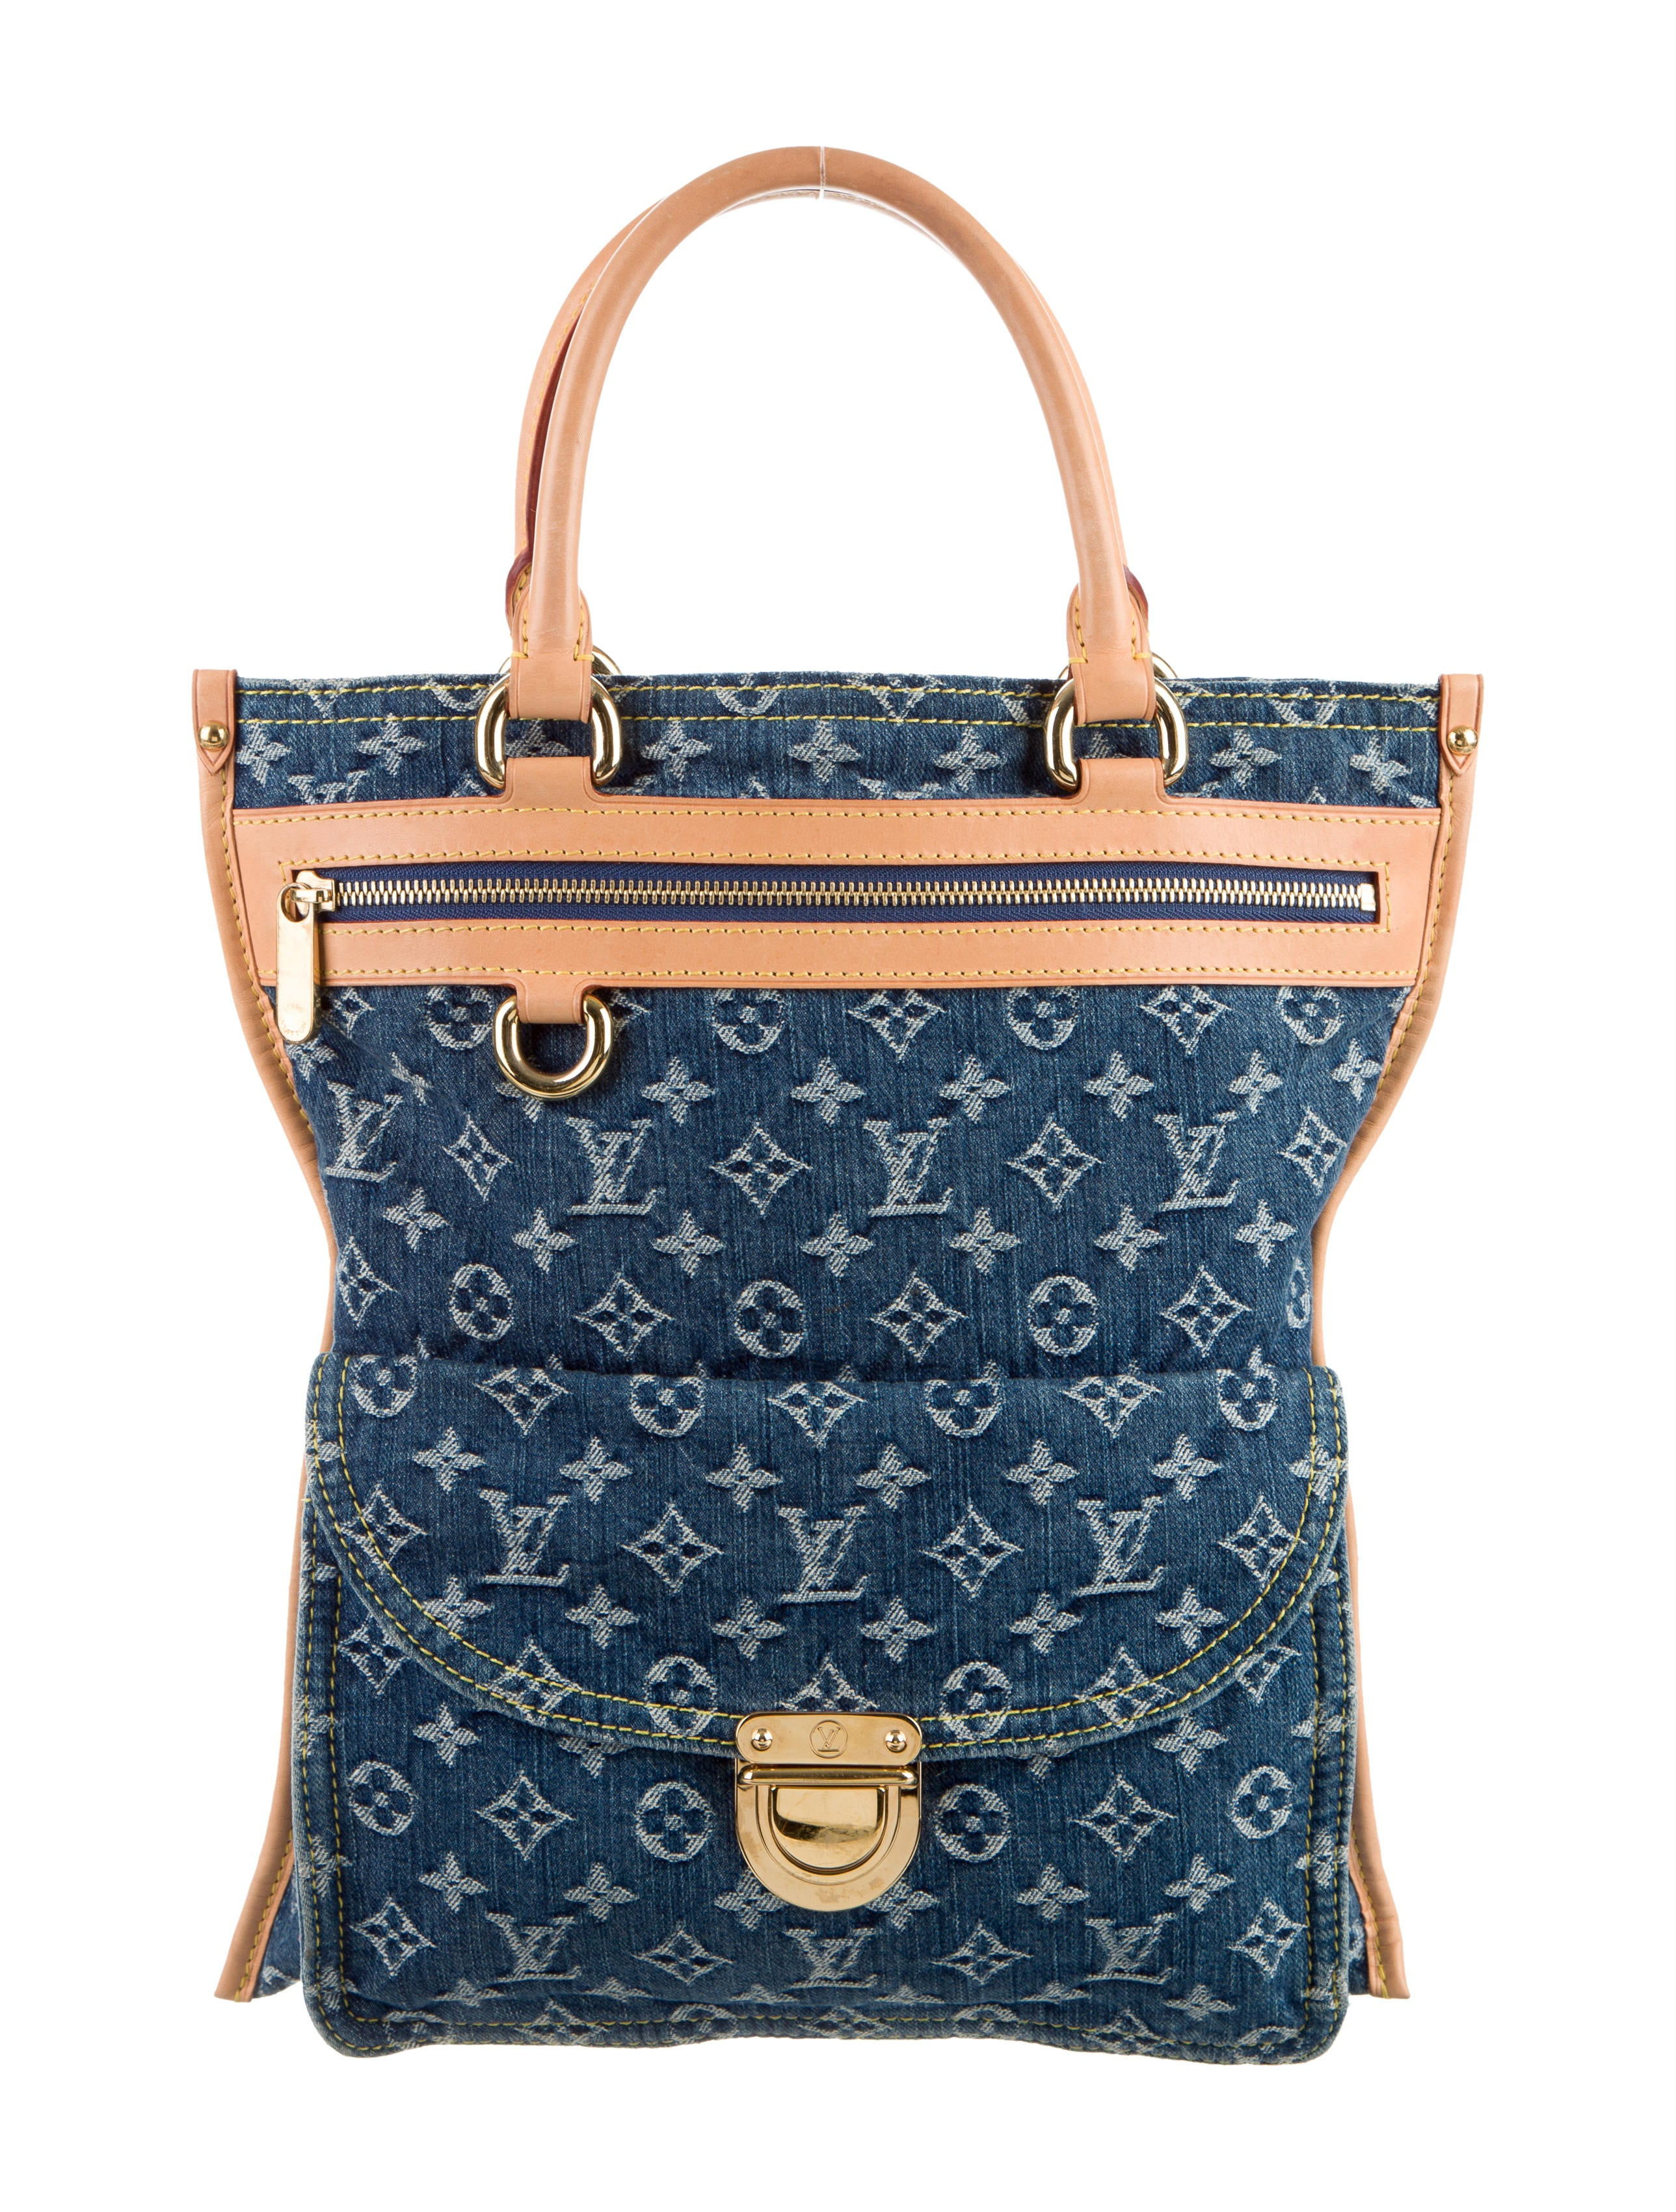 Louis vuitton monogram denim sac plat handbags for Louis vuitton monogram miroir sac plat